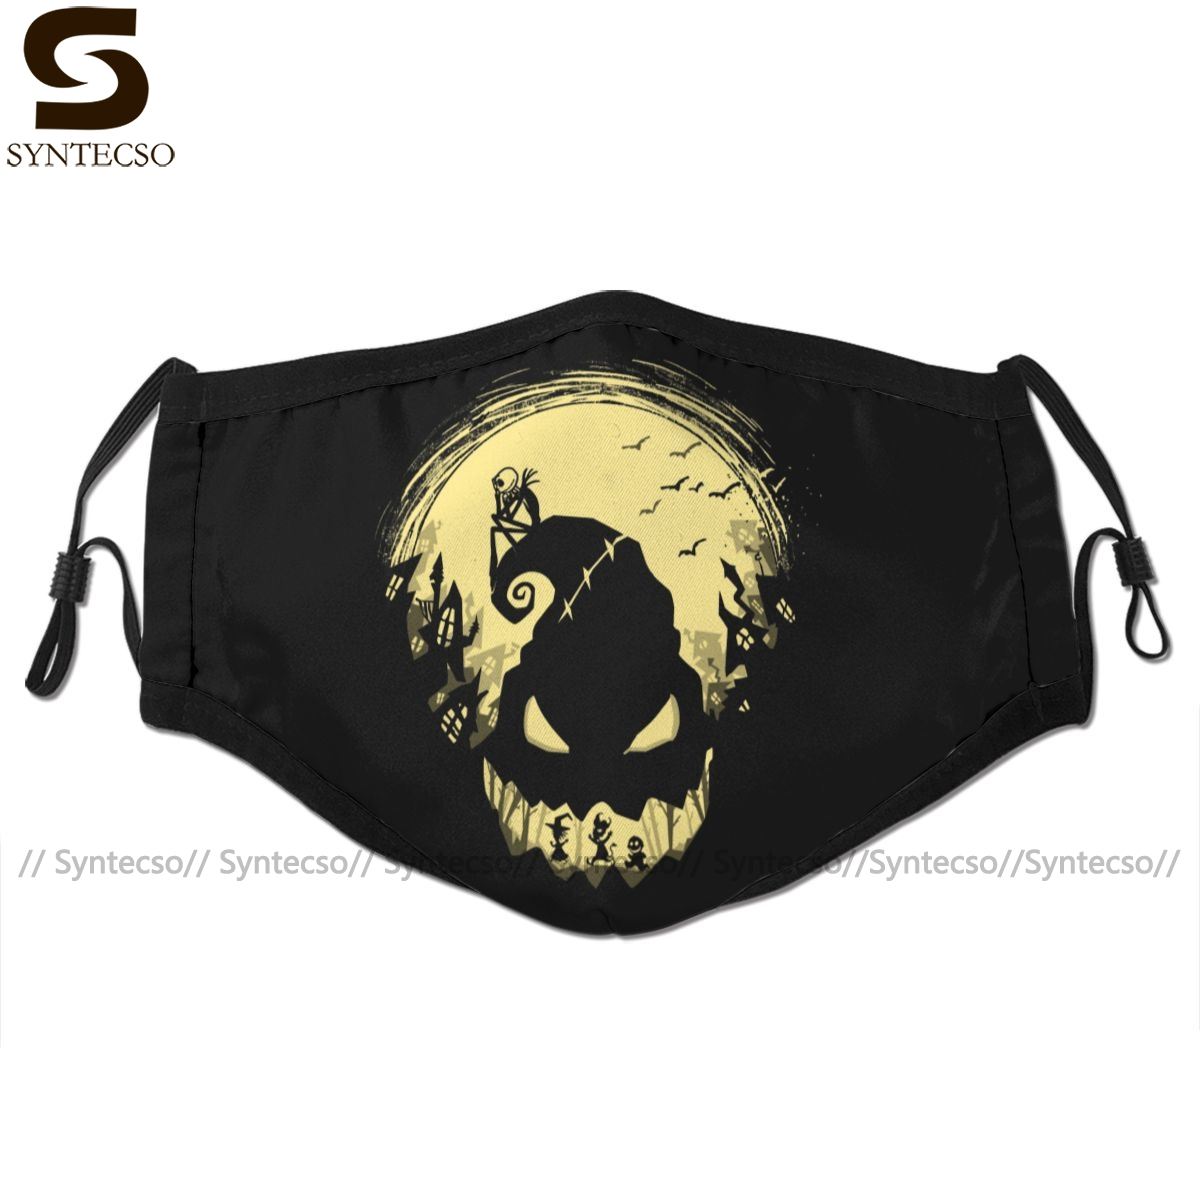 Skeleton Mouth Face Mask Jack S Nightmare Facial Mask Cool Kawai With 2 Filters For Adult